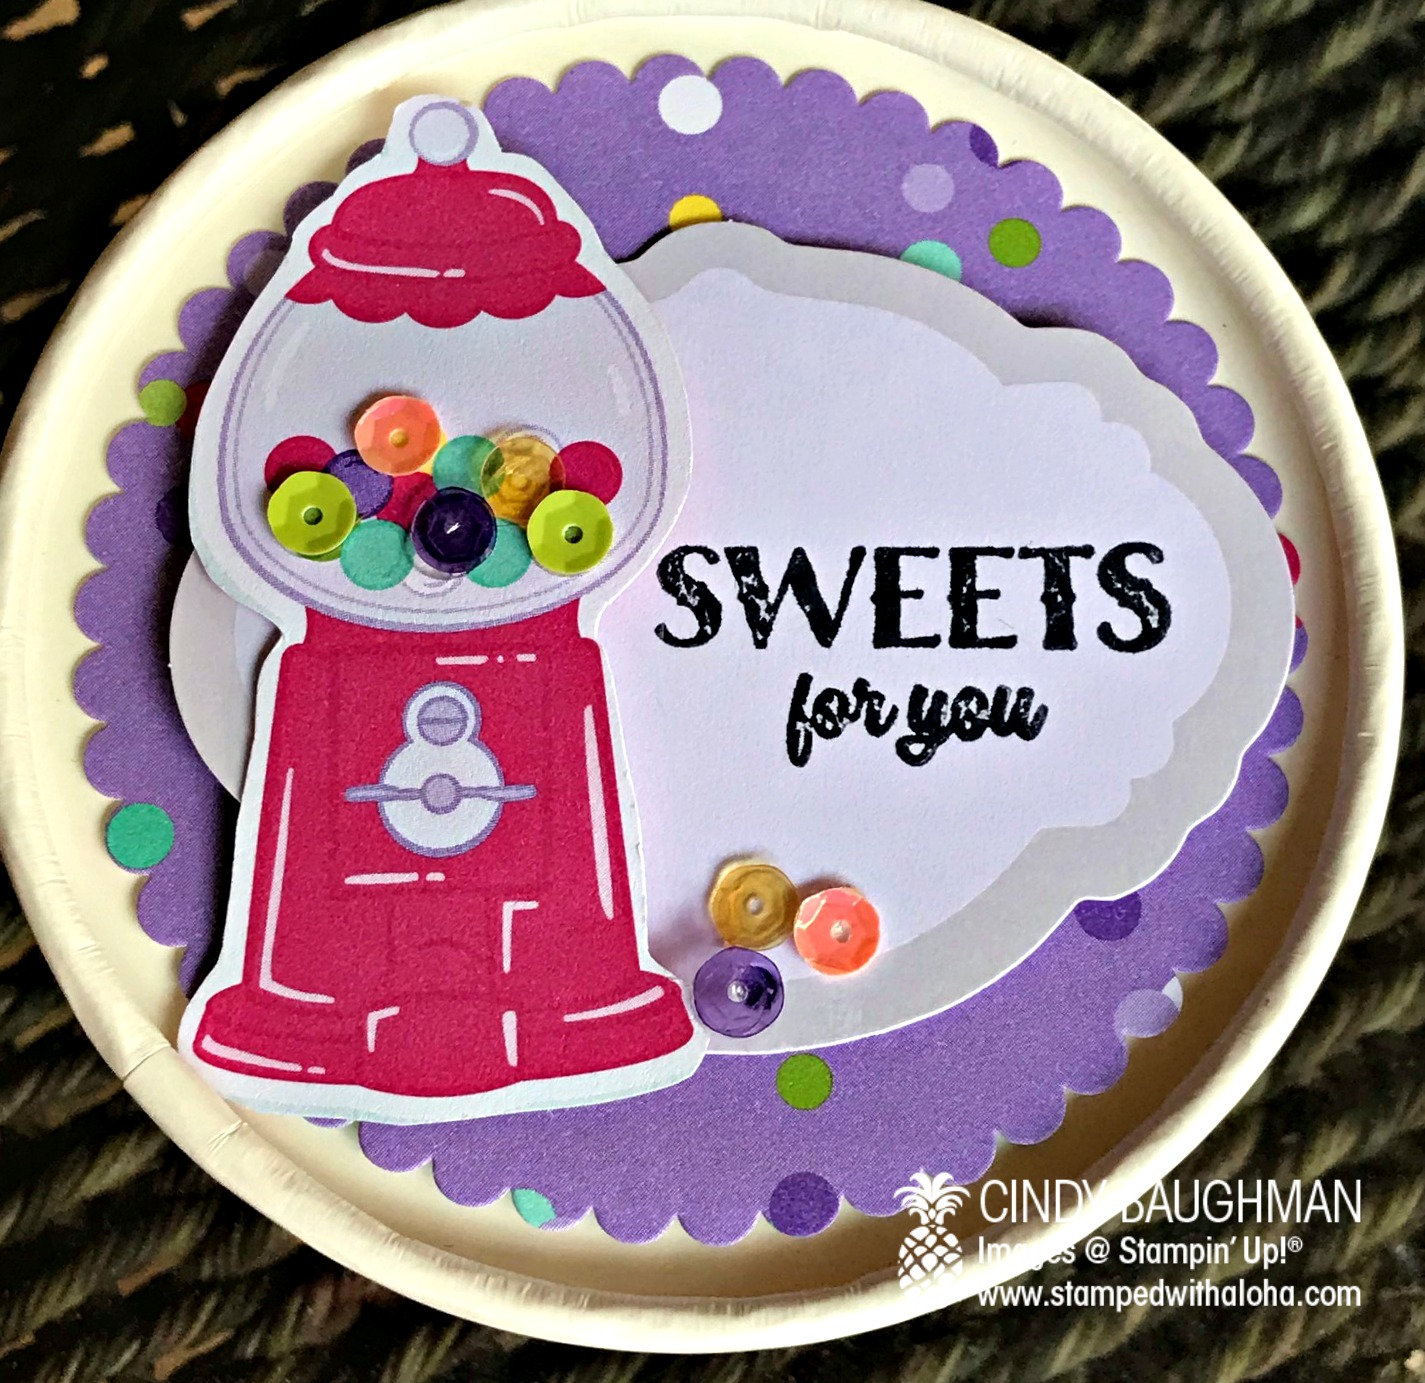 Sweet Cup Gum Ball Container - stampedwithaloha.com